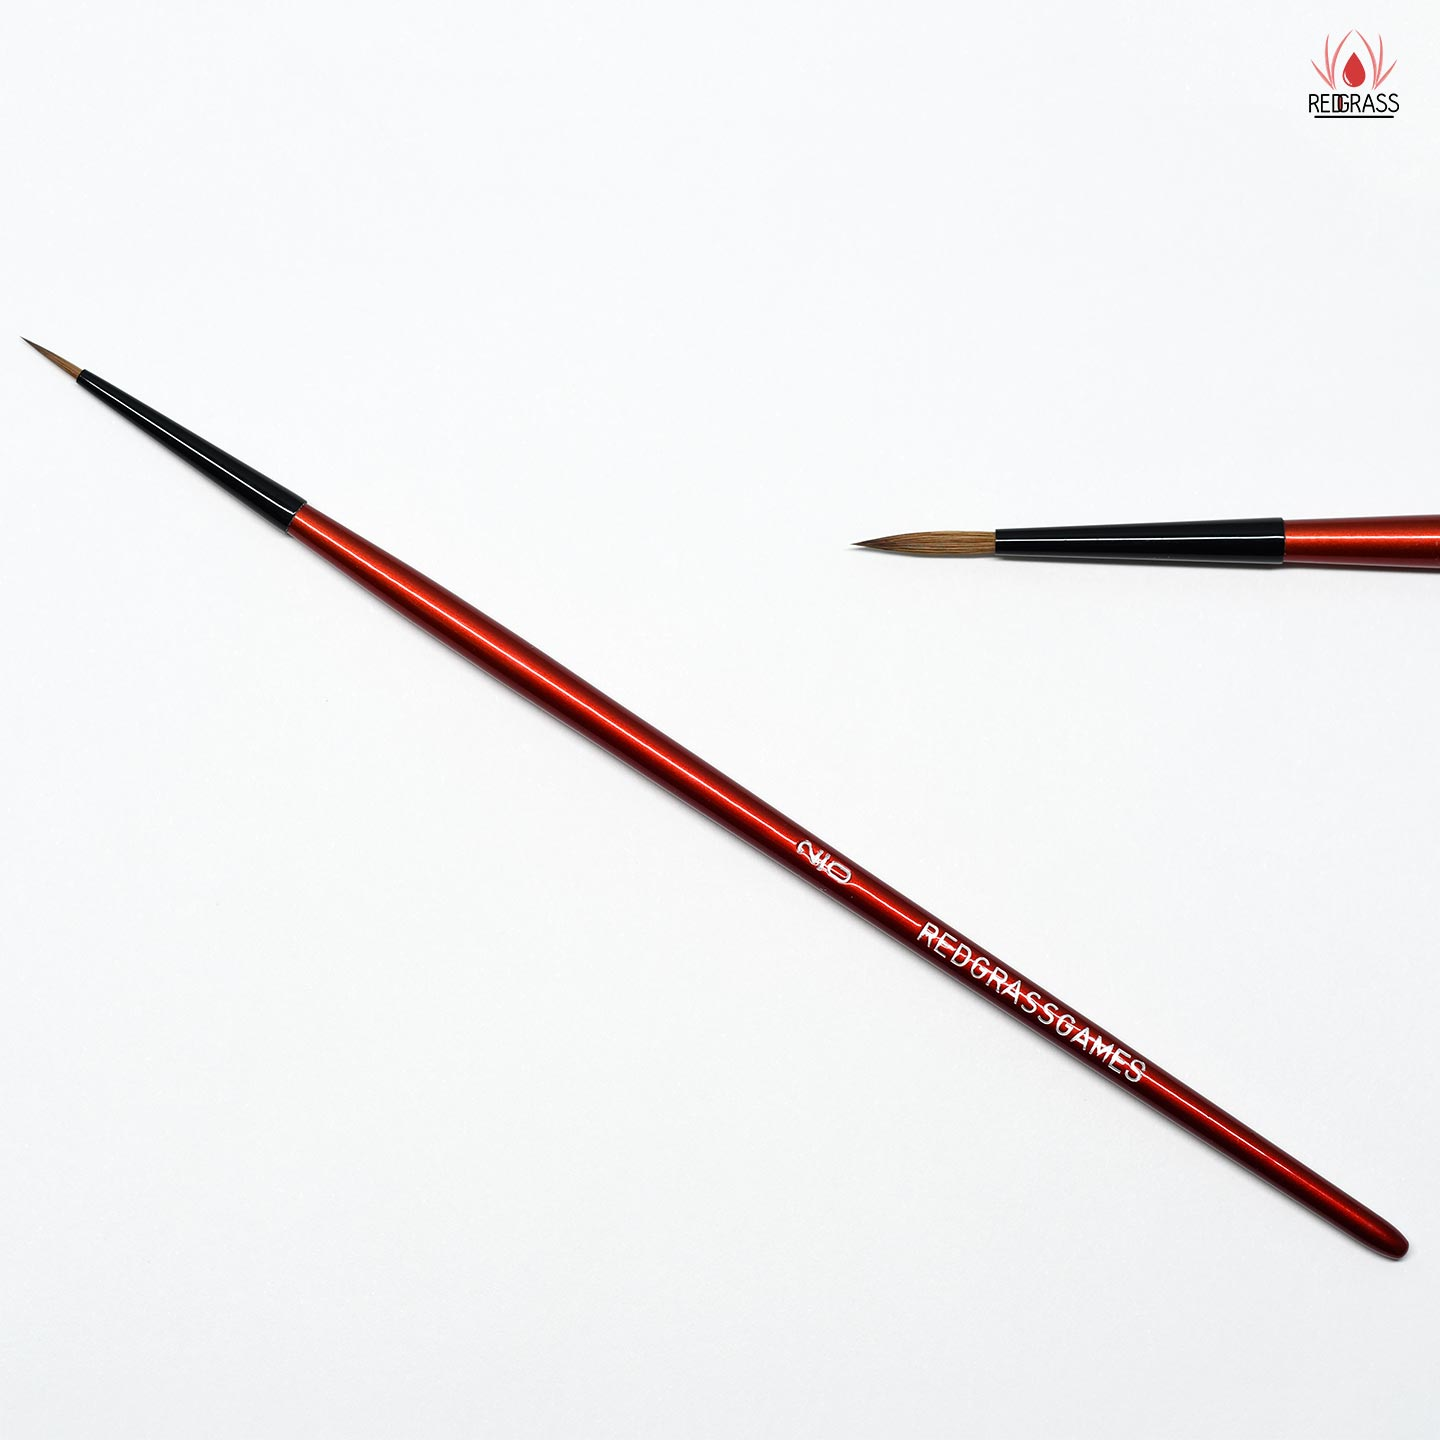 RedgrassGames Main Brush Size #2 with the finest tips and perfect hobby paint carrying capacity